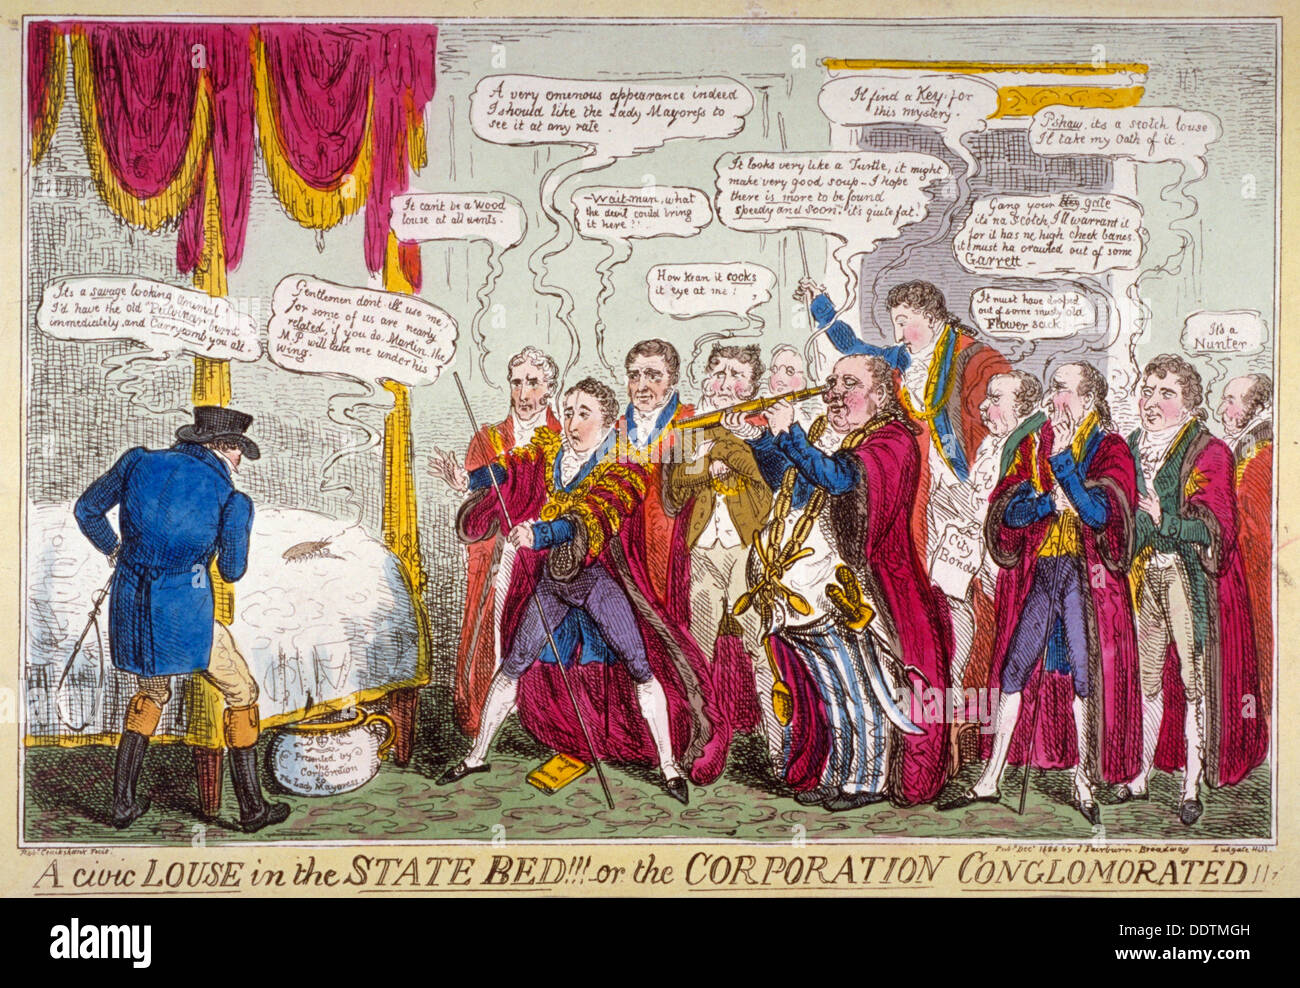 'A civic louse in the state bed!!!, or the Corporation conglomorated!!', 1824. Artist: Isaac Robert Cruikshank - Stock Image